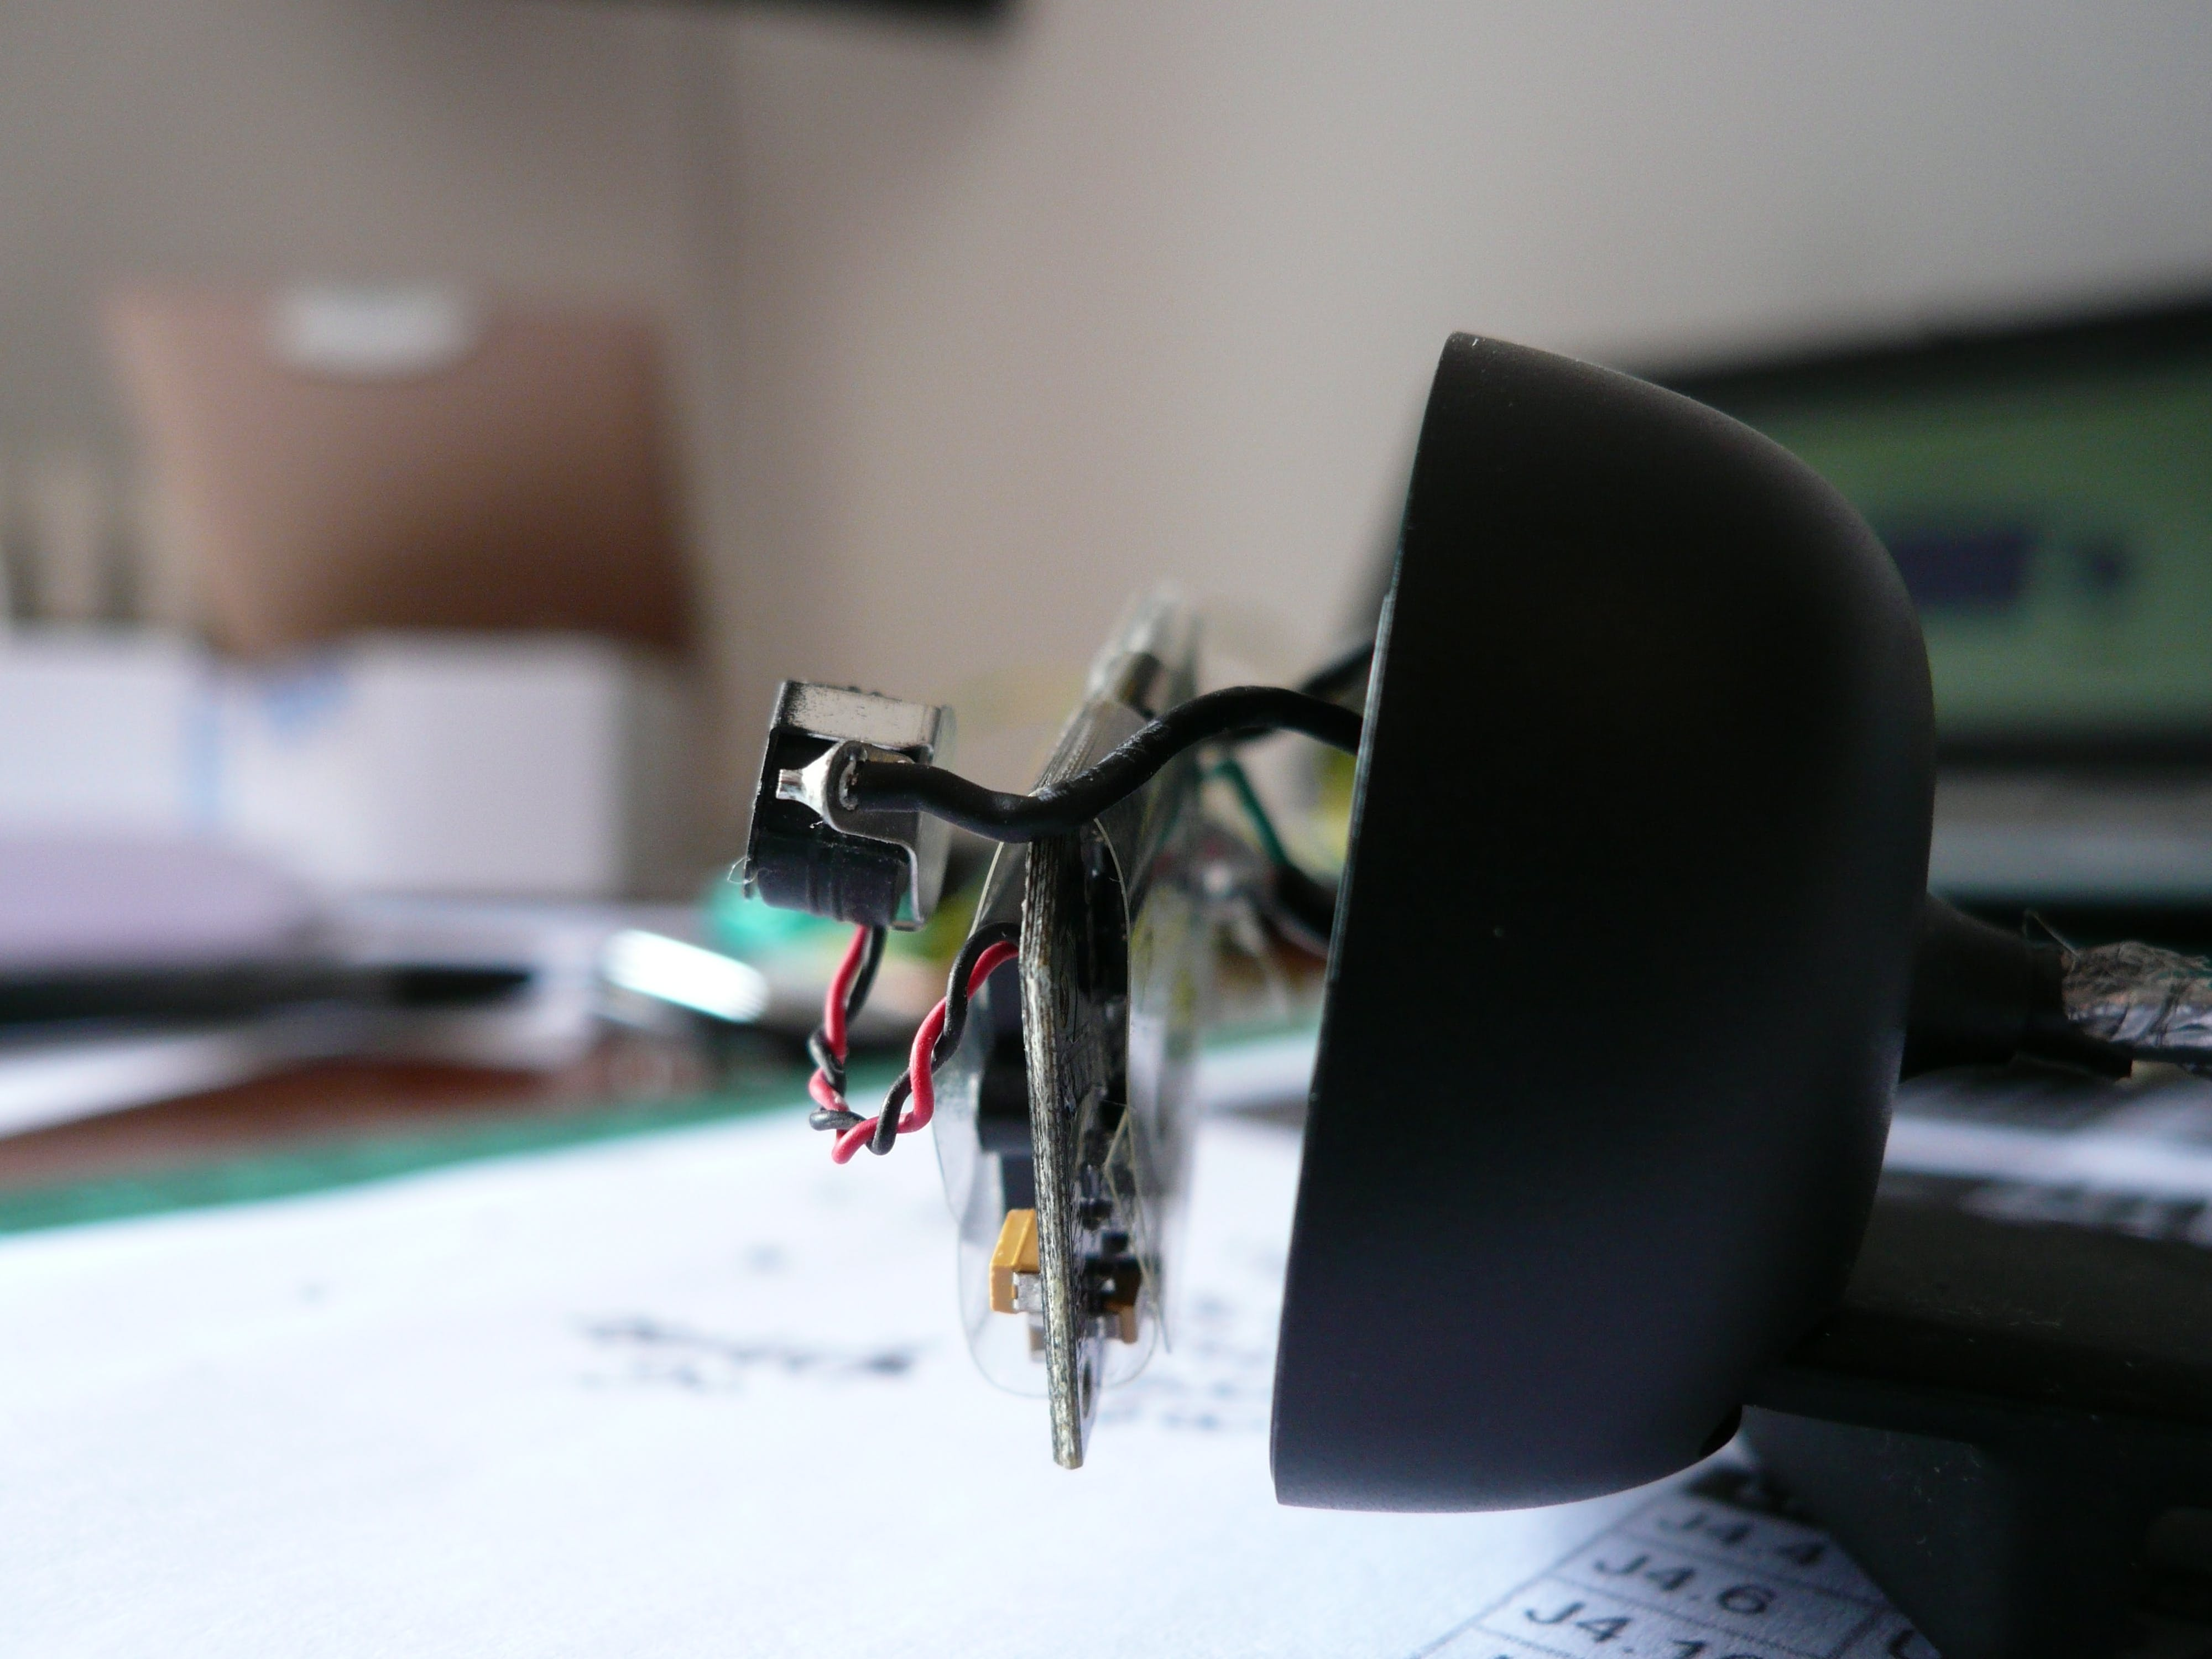 The board seen from the right side. Please note the microphone held inside a shielding clip connected to the USB cable shield